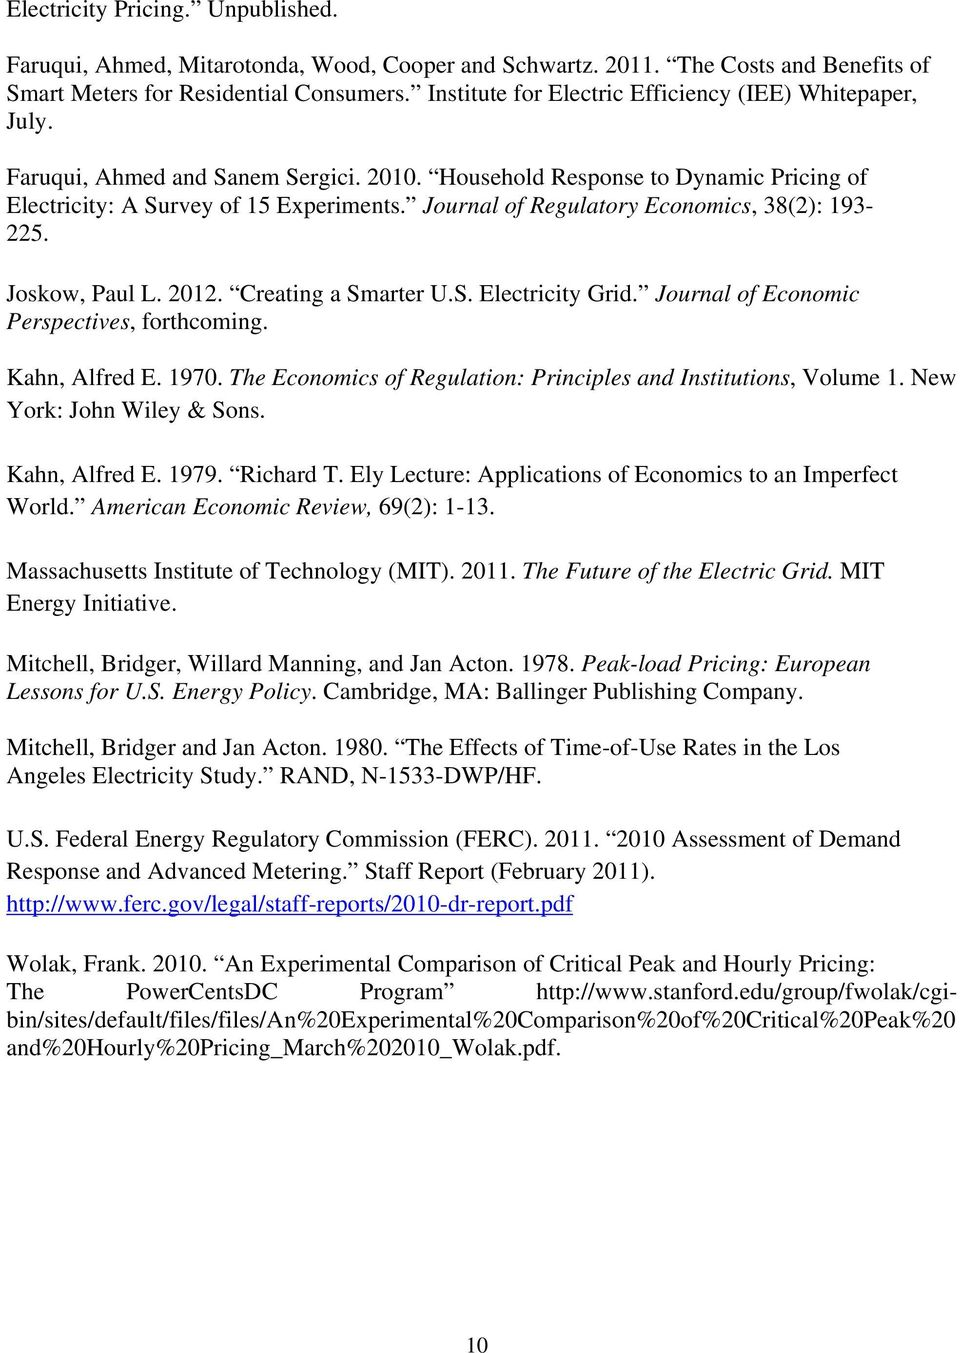 Journal of Regulatory Economics, 38(2): 193-225. Joskow, Paul L. 2012. Creating a Smarter U.S. Electricity Grid. Journal of Economic Perspectives, forthcoming. Kahn, Alfred E. 1970.